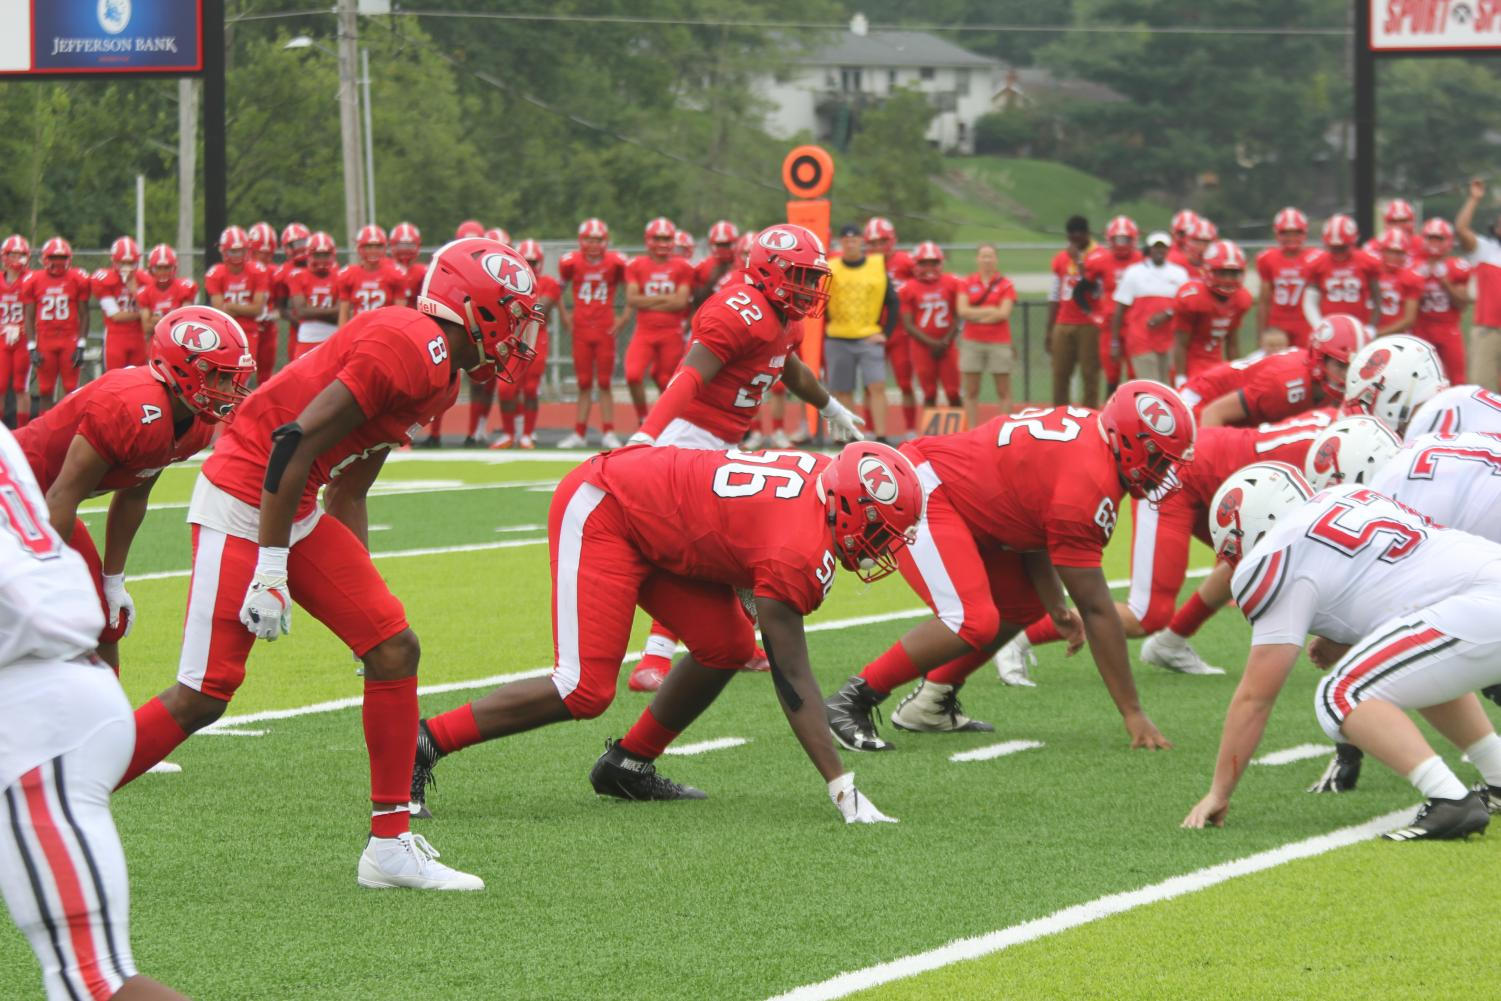 Will+Lee+%288%29%2C+Devrin+Williams+Jr.+%2856%29+and+Brendan+Arnold-Gill+%2862%29+get+ready+to+rush+the+passer.